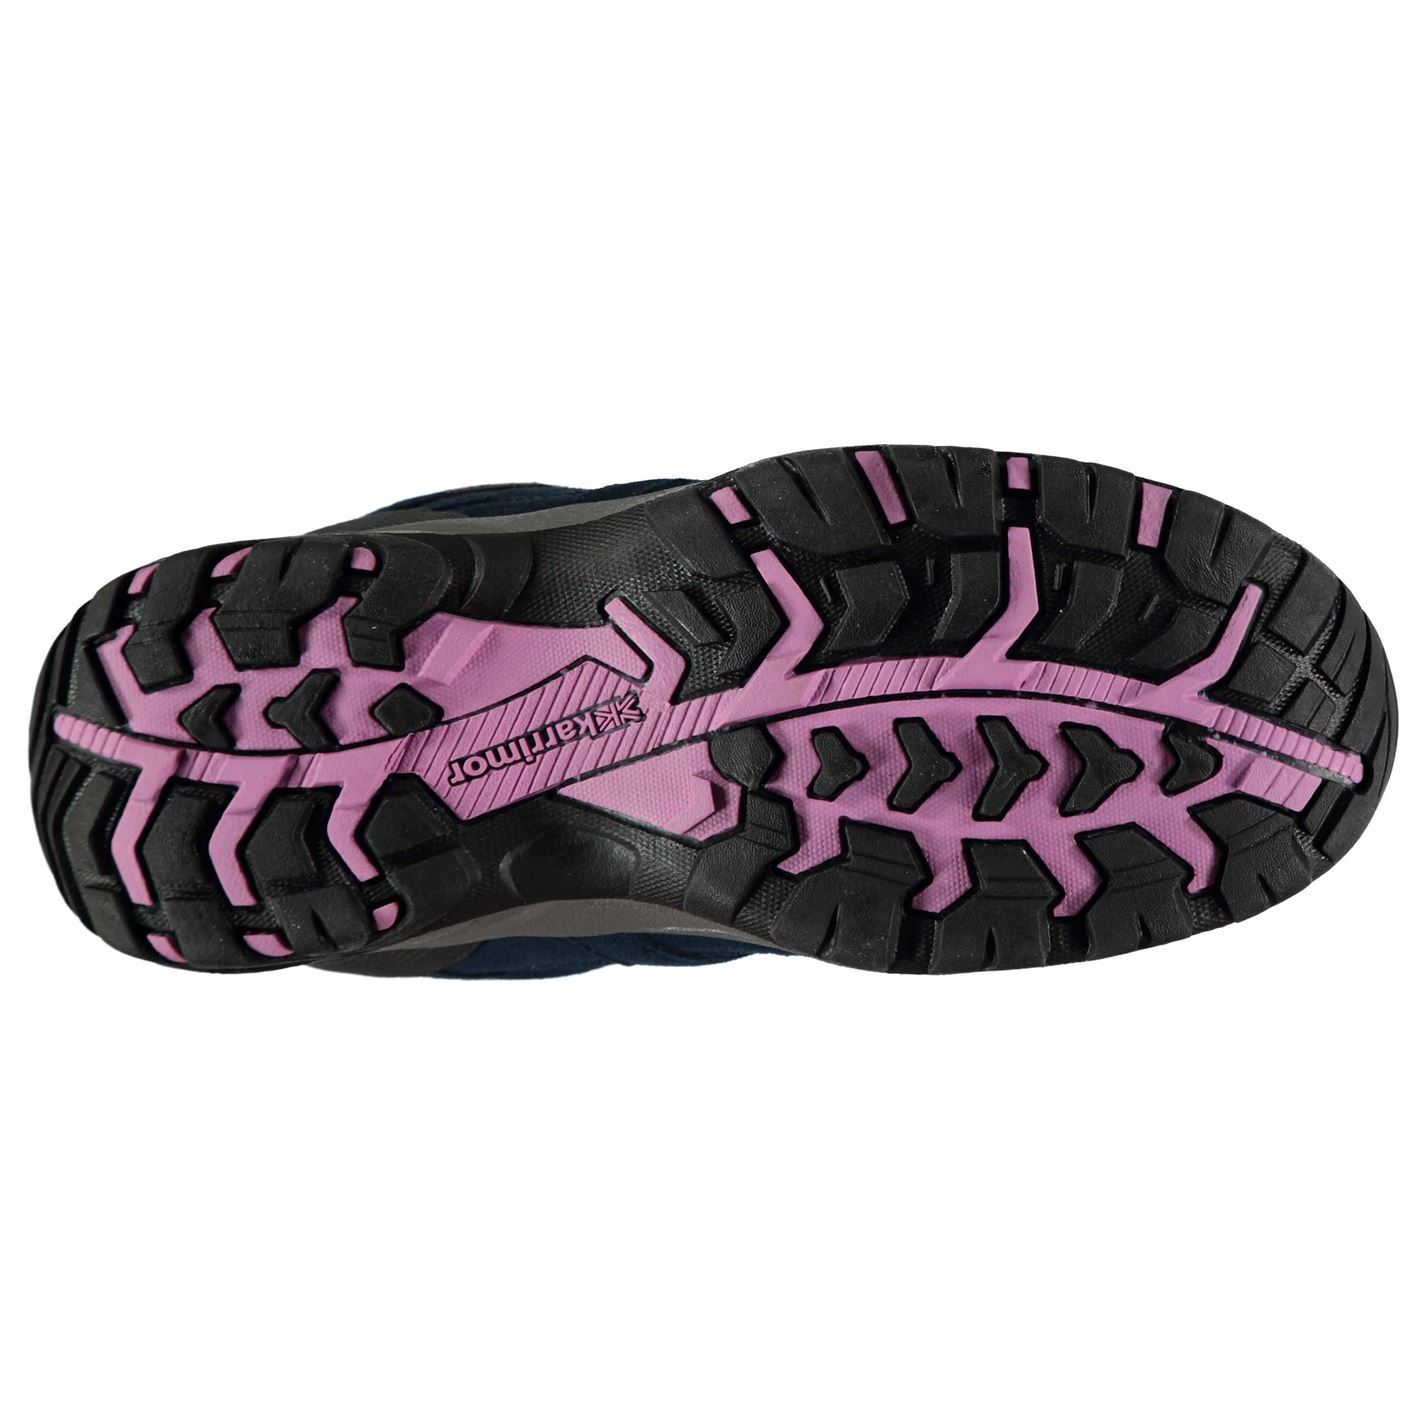 088cd8e1137 Details about Karrimor Mount Mid Waterproof Walking Boots Juniors Girls  Navy/Pink Hiking Shoes